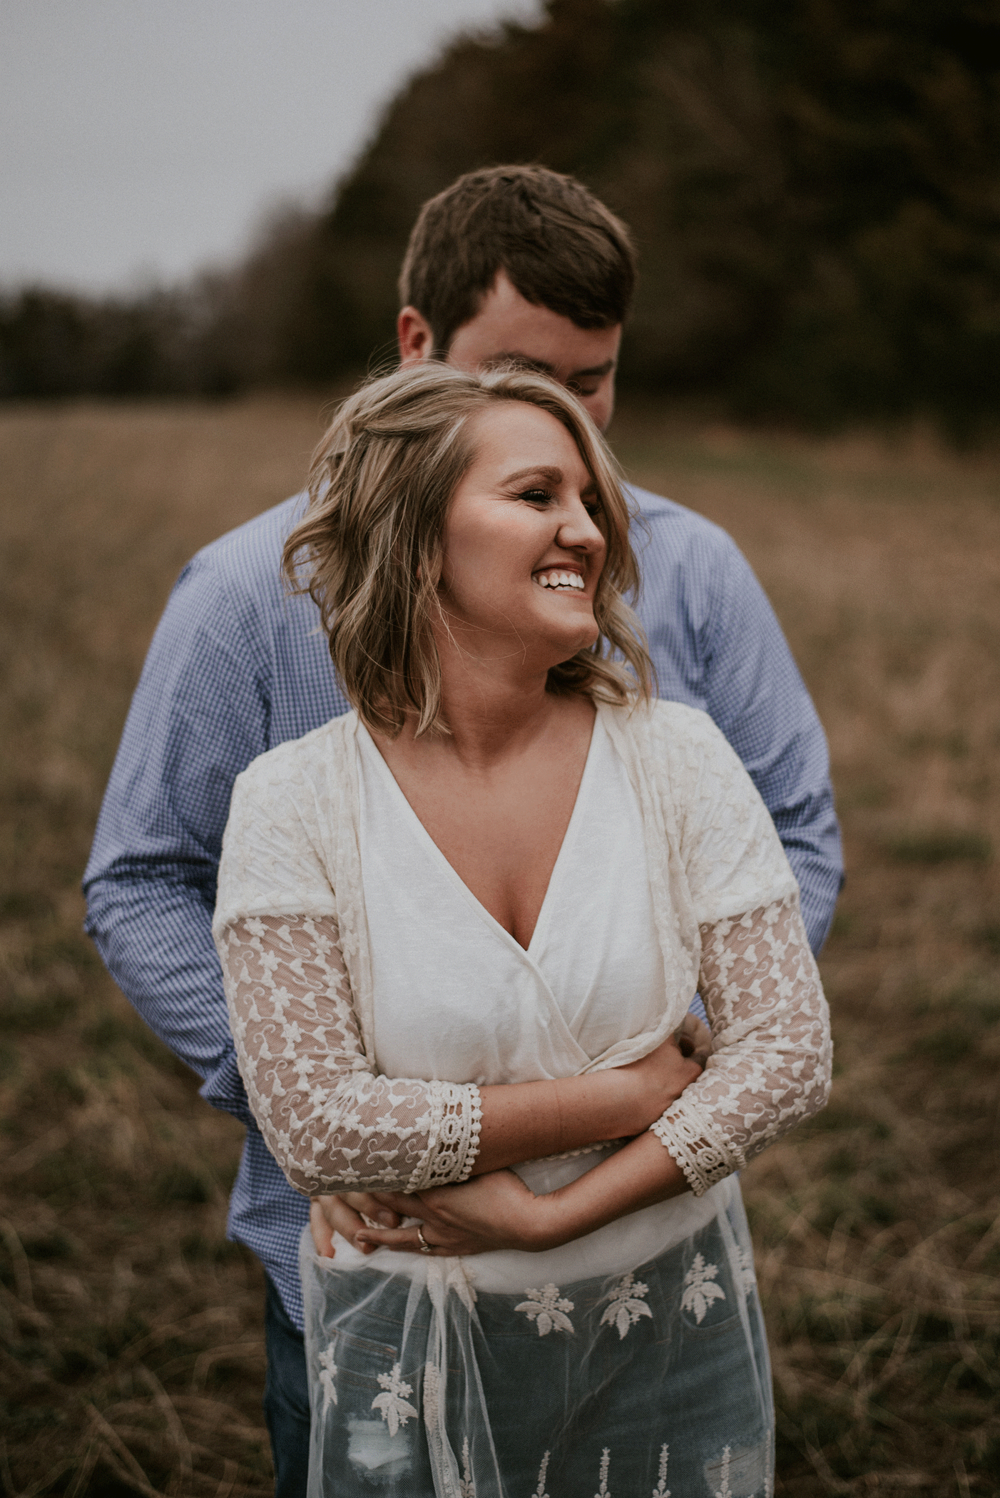 kaylie-sirek-nebraska-wedding-engagement-photographer-photography-grand-island-kearney-hastings-lincoln-02.png